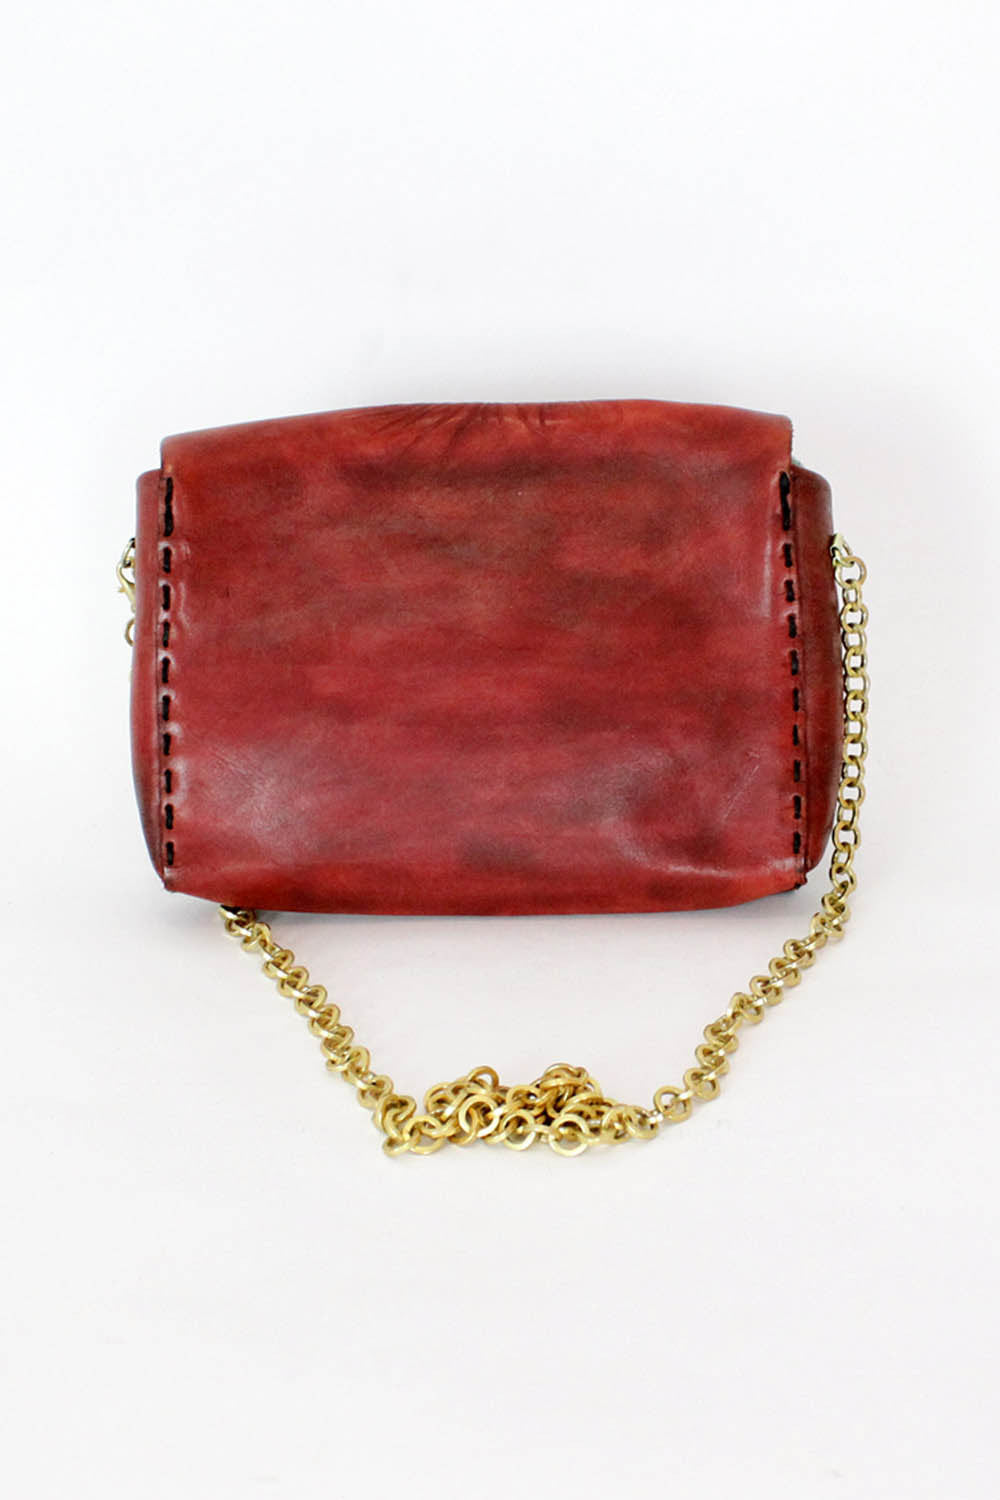 vintage metal chain purse